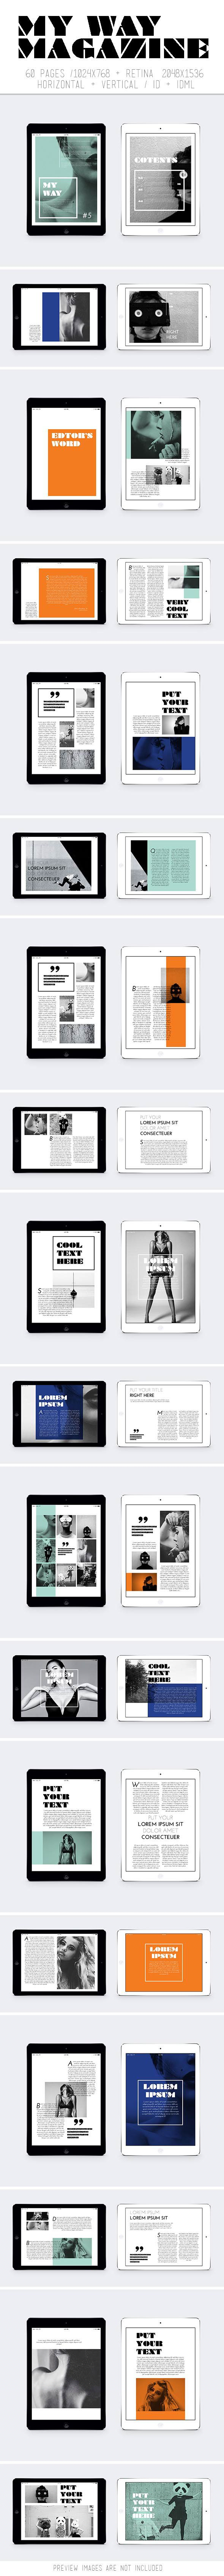 Tablet My Way Magazine on Behance